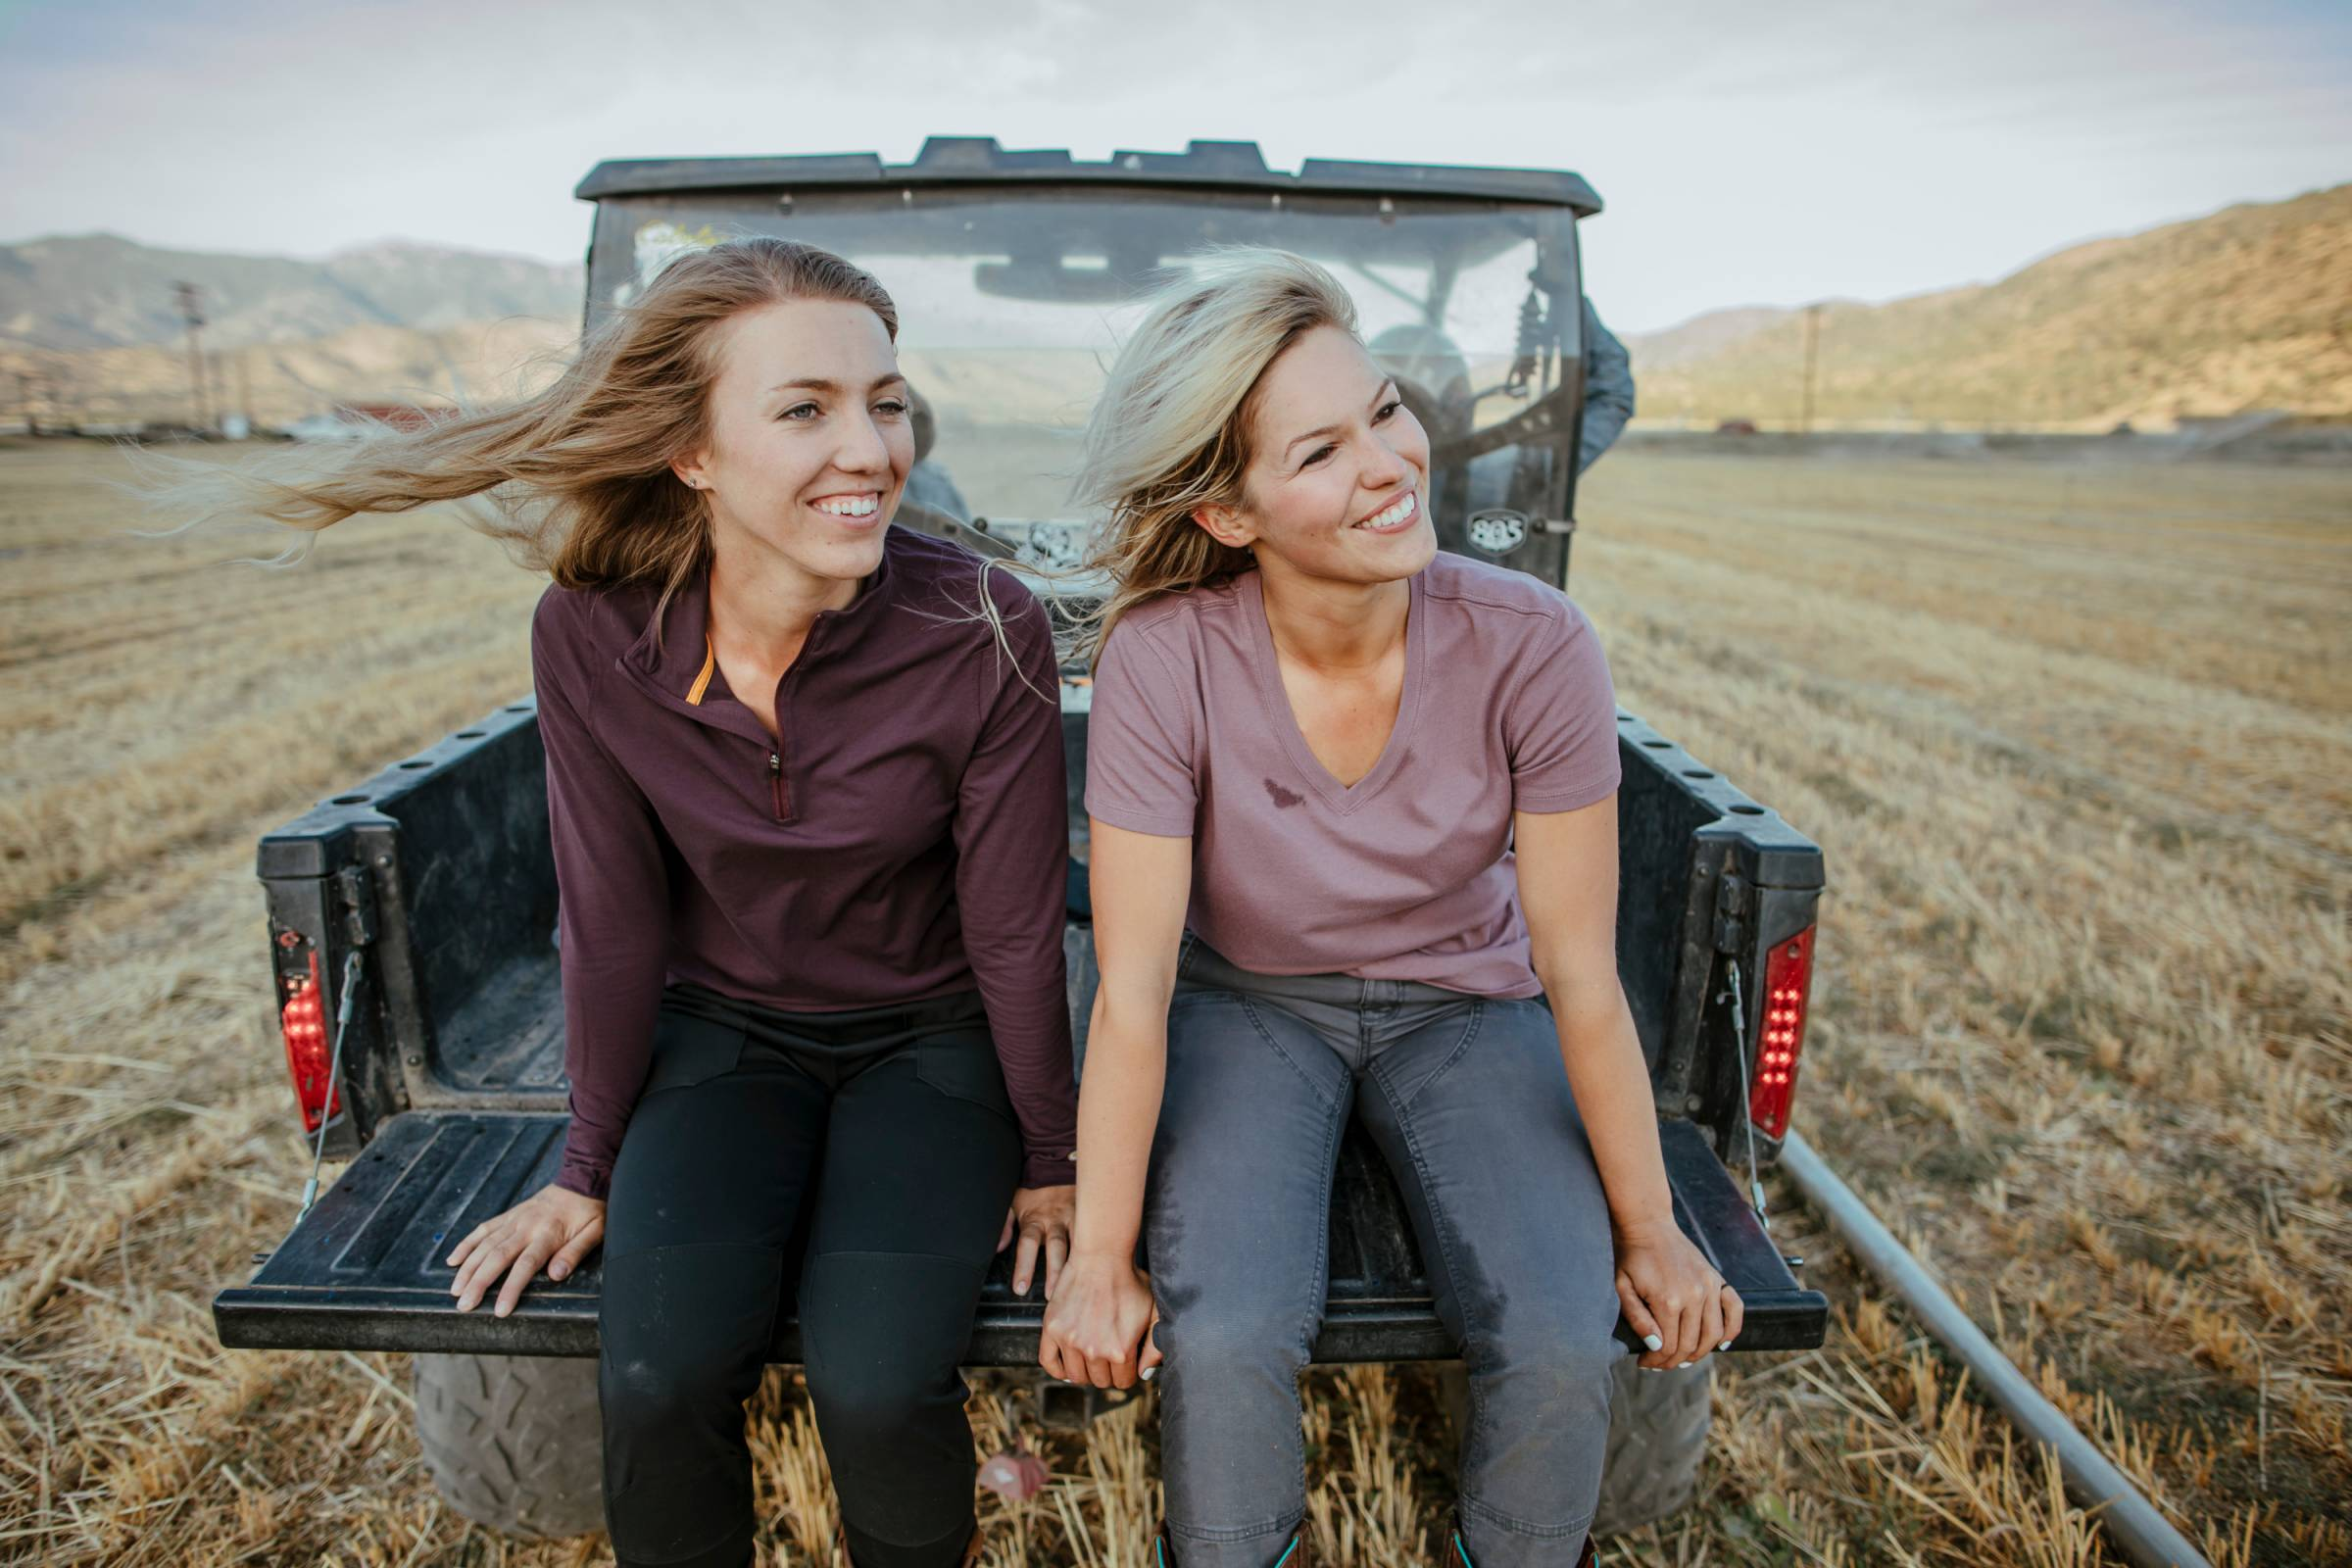 Carhartt Force apparel on women at ranch